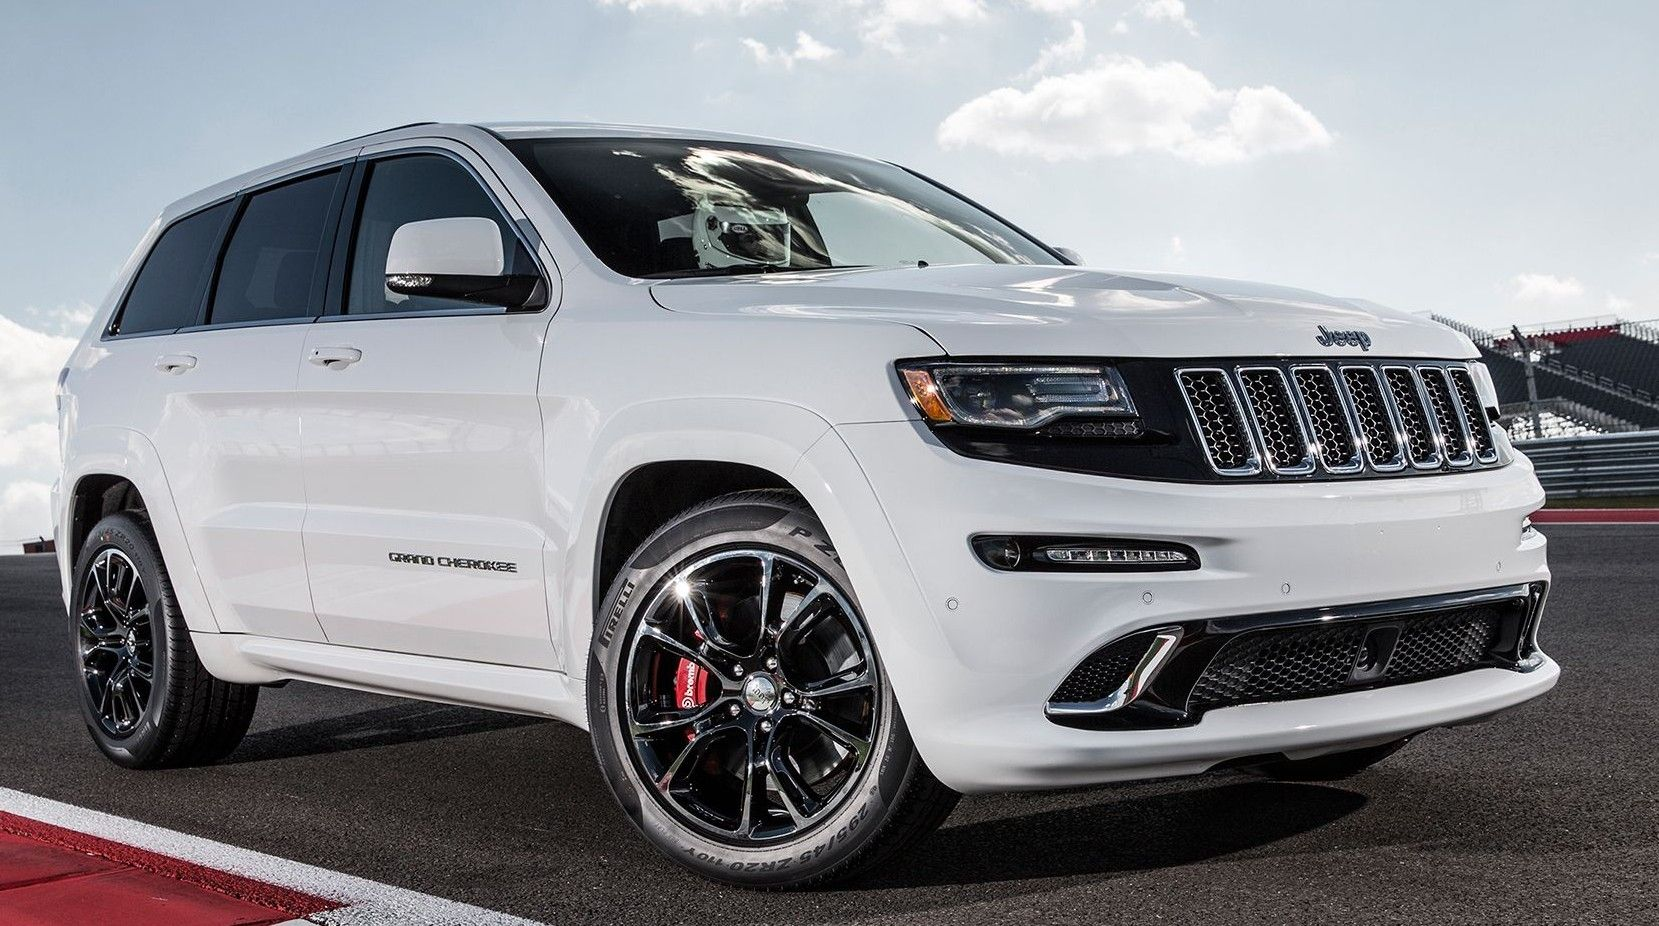 Hellcat Engine To Be Used In 2017 Jeep Cherokee Trackhawk